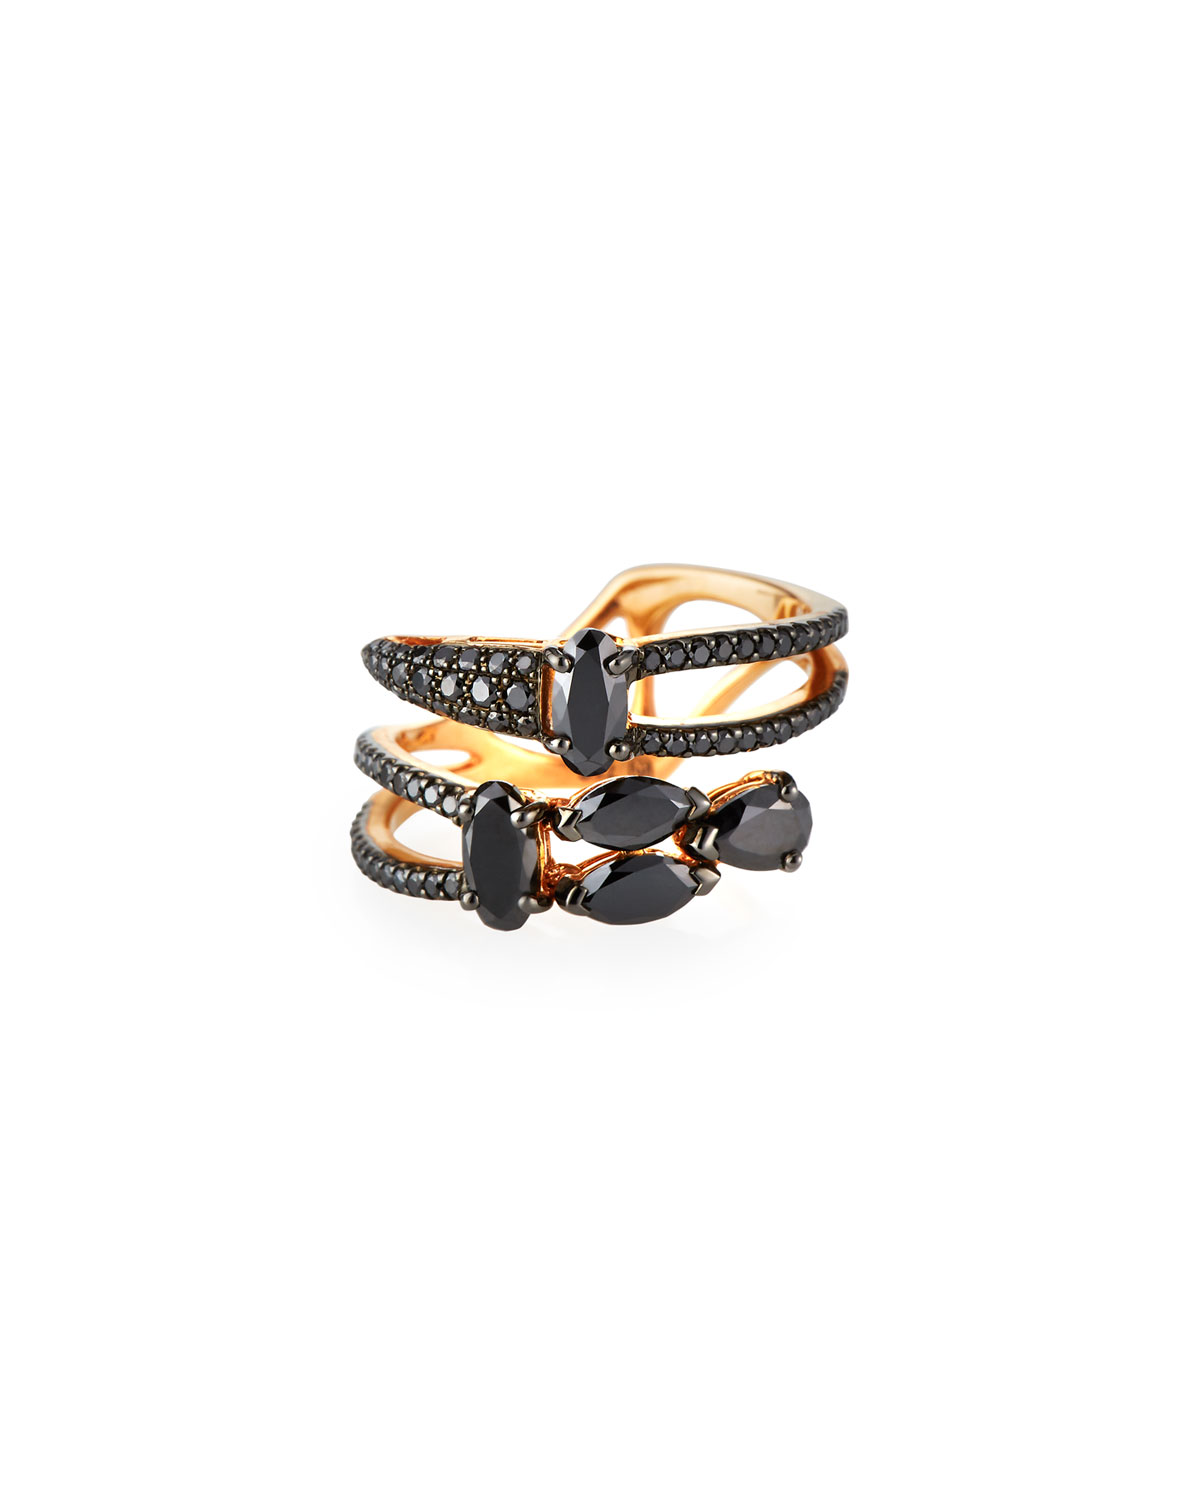 Etho Maria 18k Rose Gold Black Diamond Bypass Ring, Size 6.25